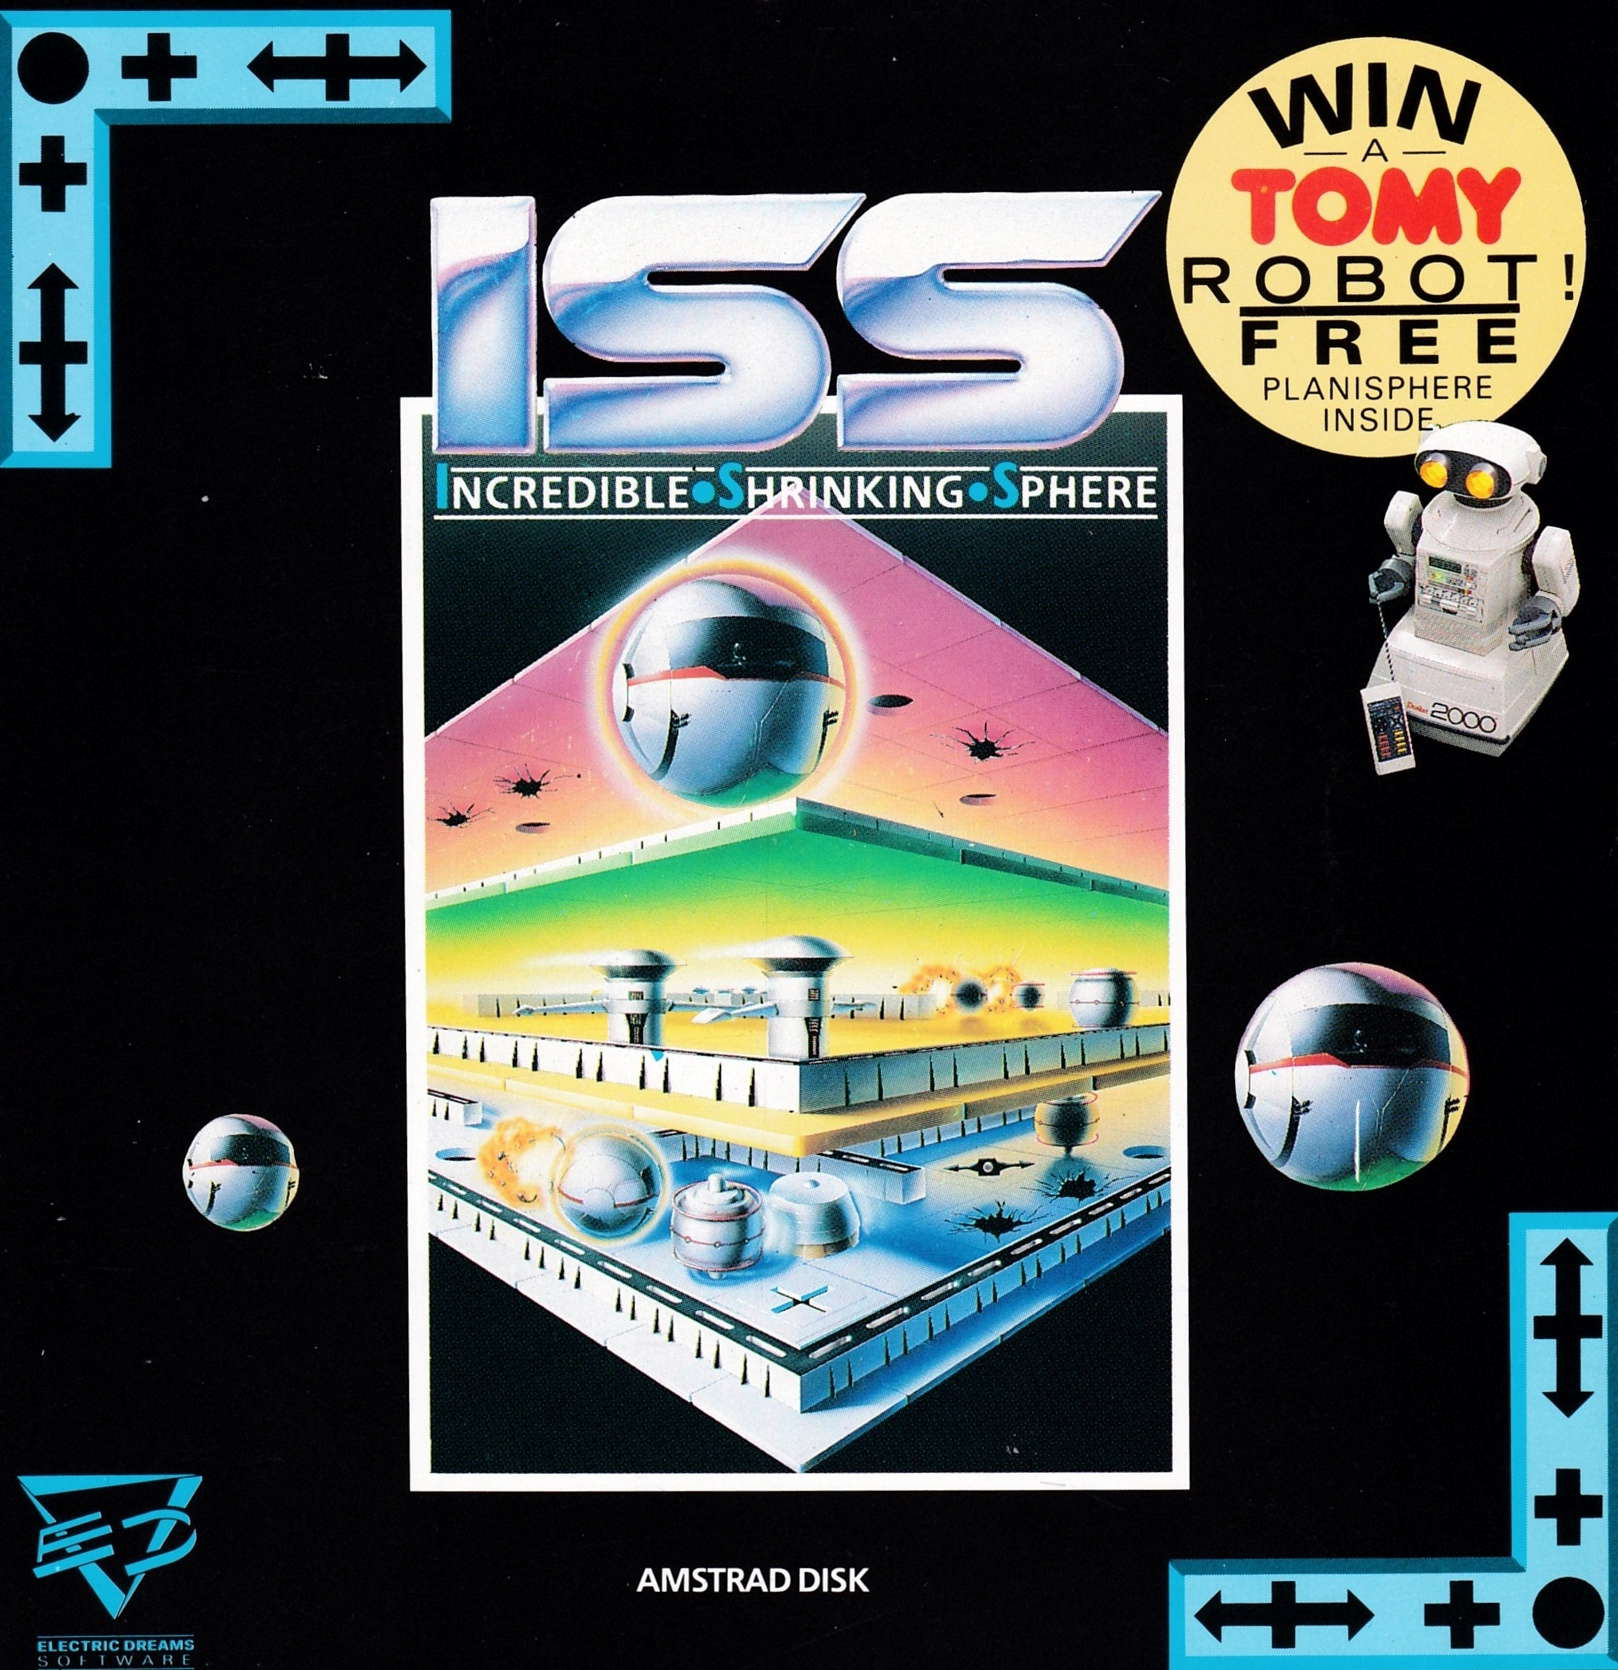 screenshot of the Amstrad CPC game I.S.S. - Incredible Shrinking Sphere by GameBase CPC